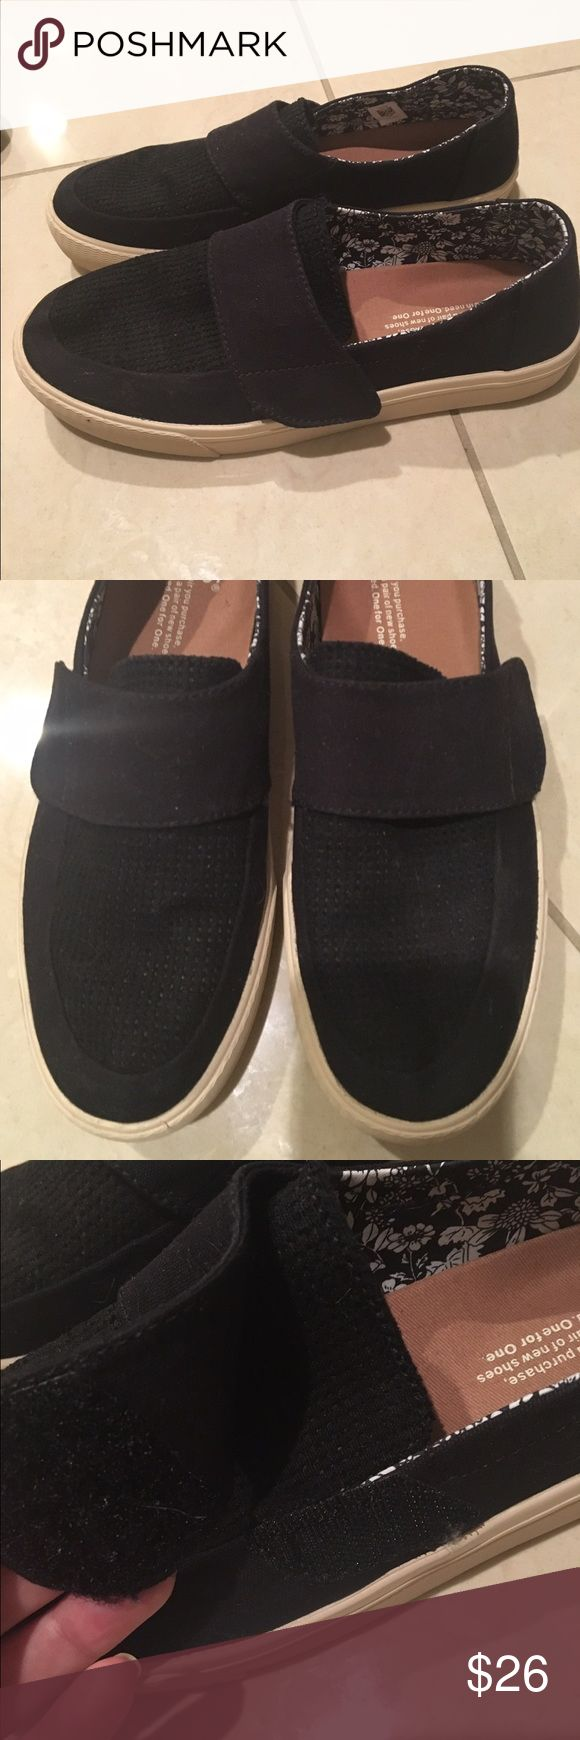 WORN ONCE! Size 7.5 TOMS loafers/slip on shoes I wore these once for just a few hours!  I loved them except they're a 1/2 size too big. The reviews said order a size up, I'm a perfect size 7, I ordered a 7.5 & they're a smudge too big. They run perfectly TTS. Worn one time, no flaws, light signs of wear on bottom since I did wear them outside. They have a Velcro strap so you can tighten or loosen, which is awesome for people with wide feet or narrow feet. TOMS Shoes Flats & Loafers